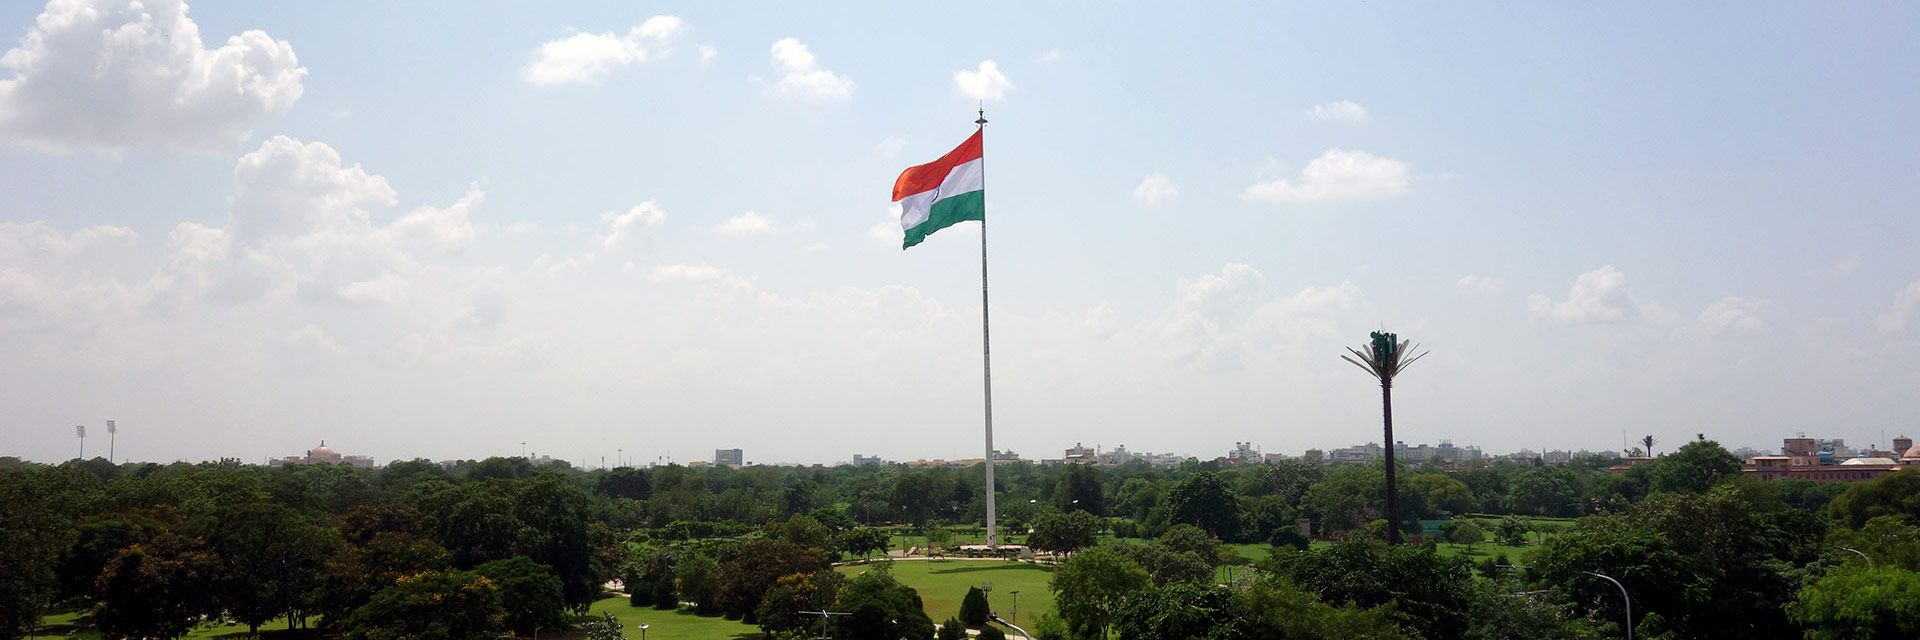 view of the indian flag